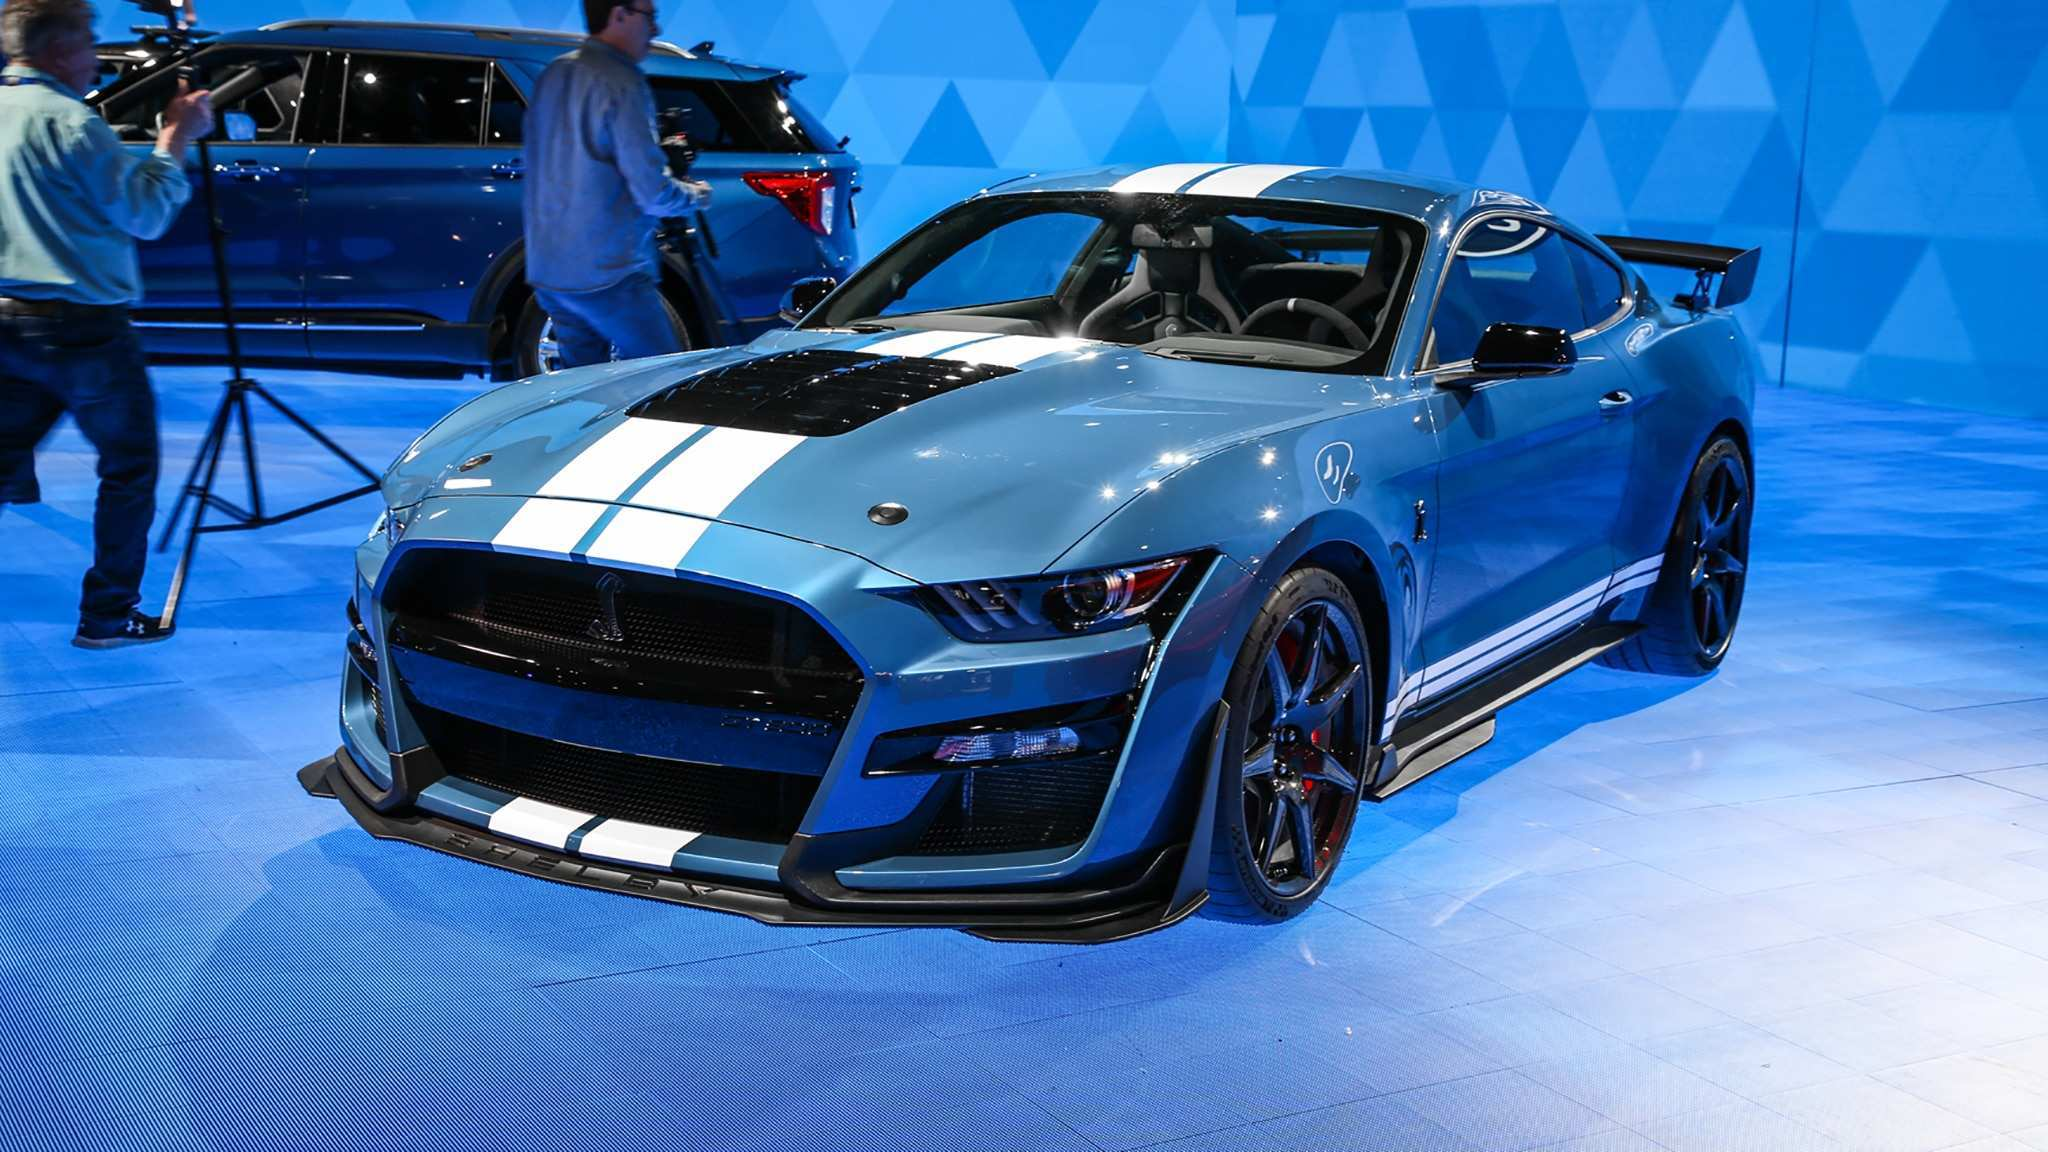 75 The Price Of 2020 Ford Mustang Shelby Gt500 Release